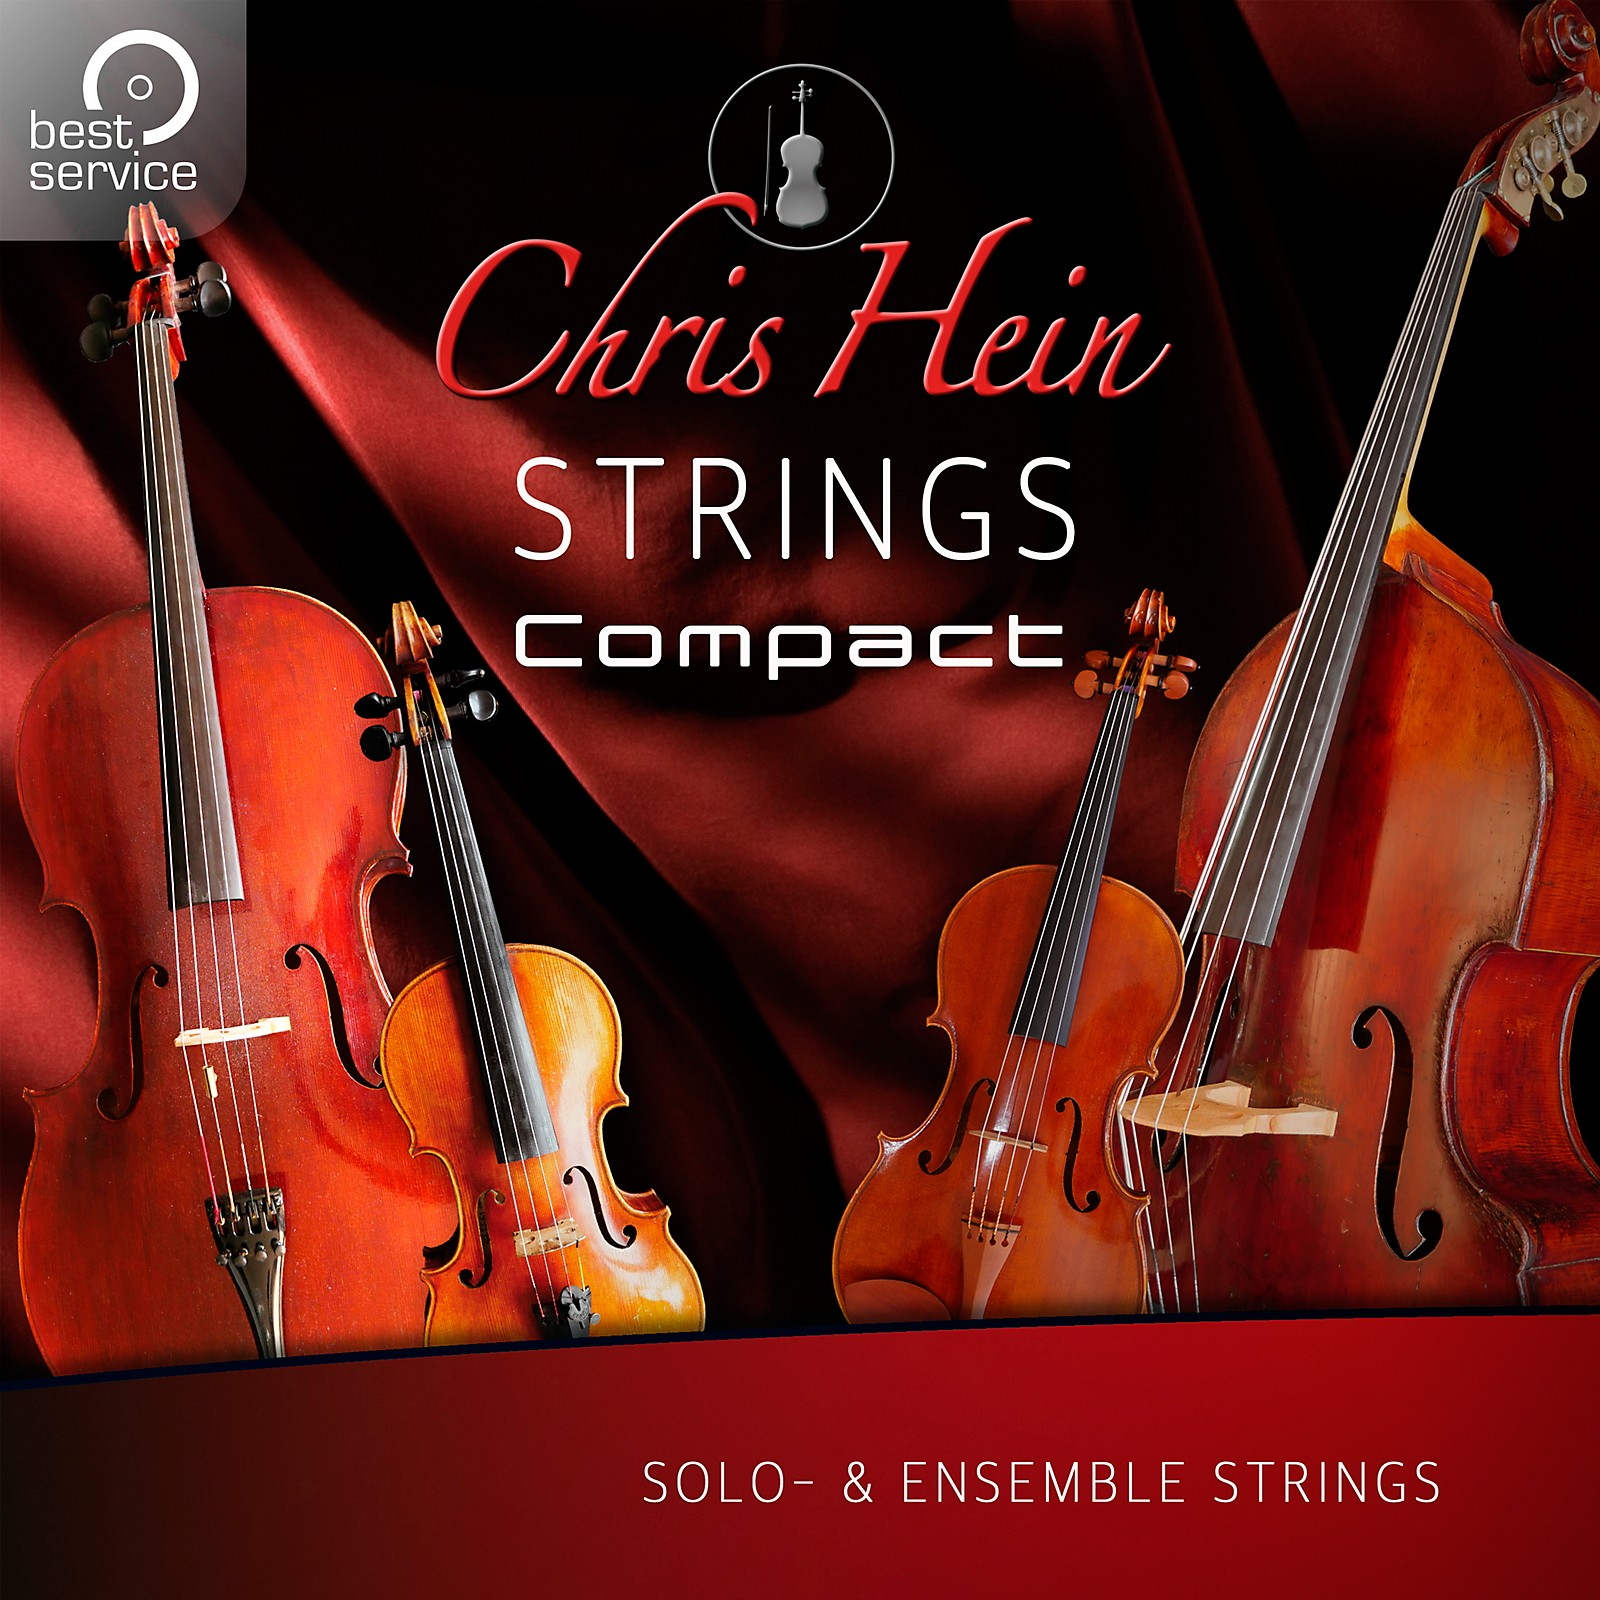 Best Service Chris Hein Strings Compact (Download)